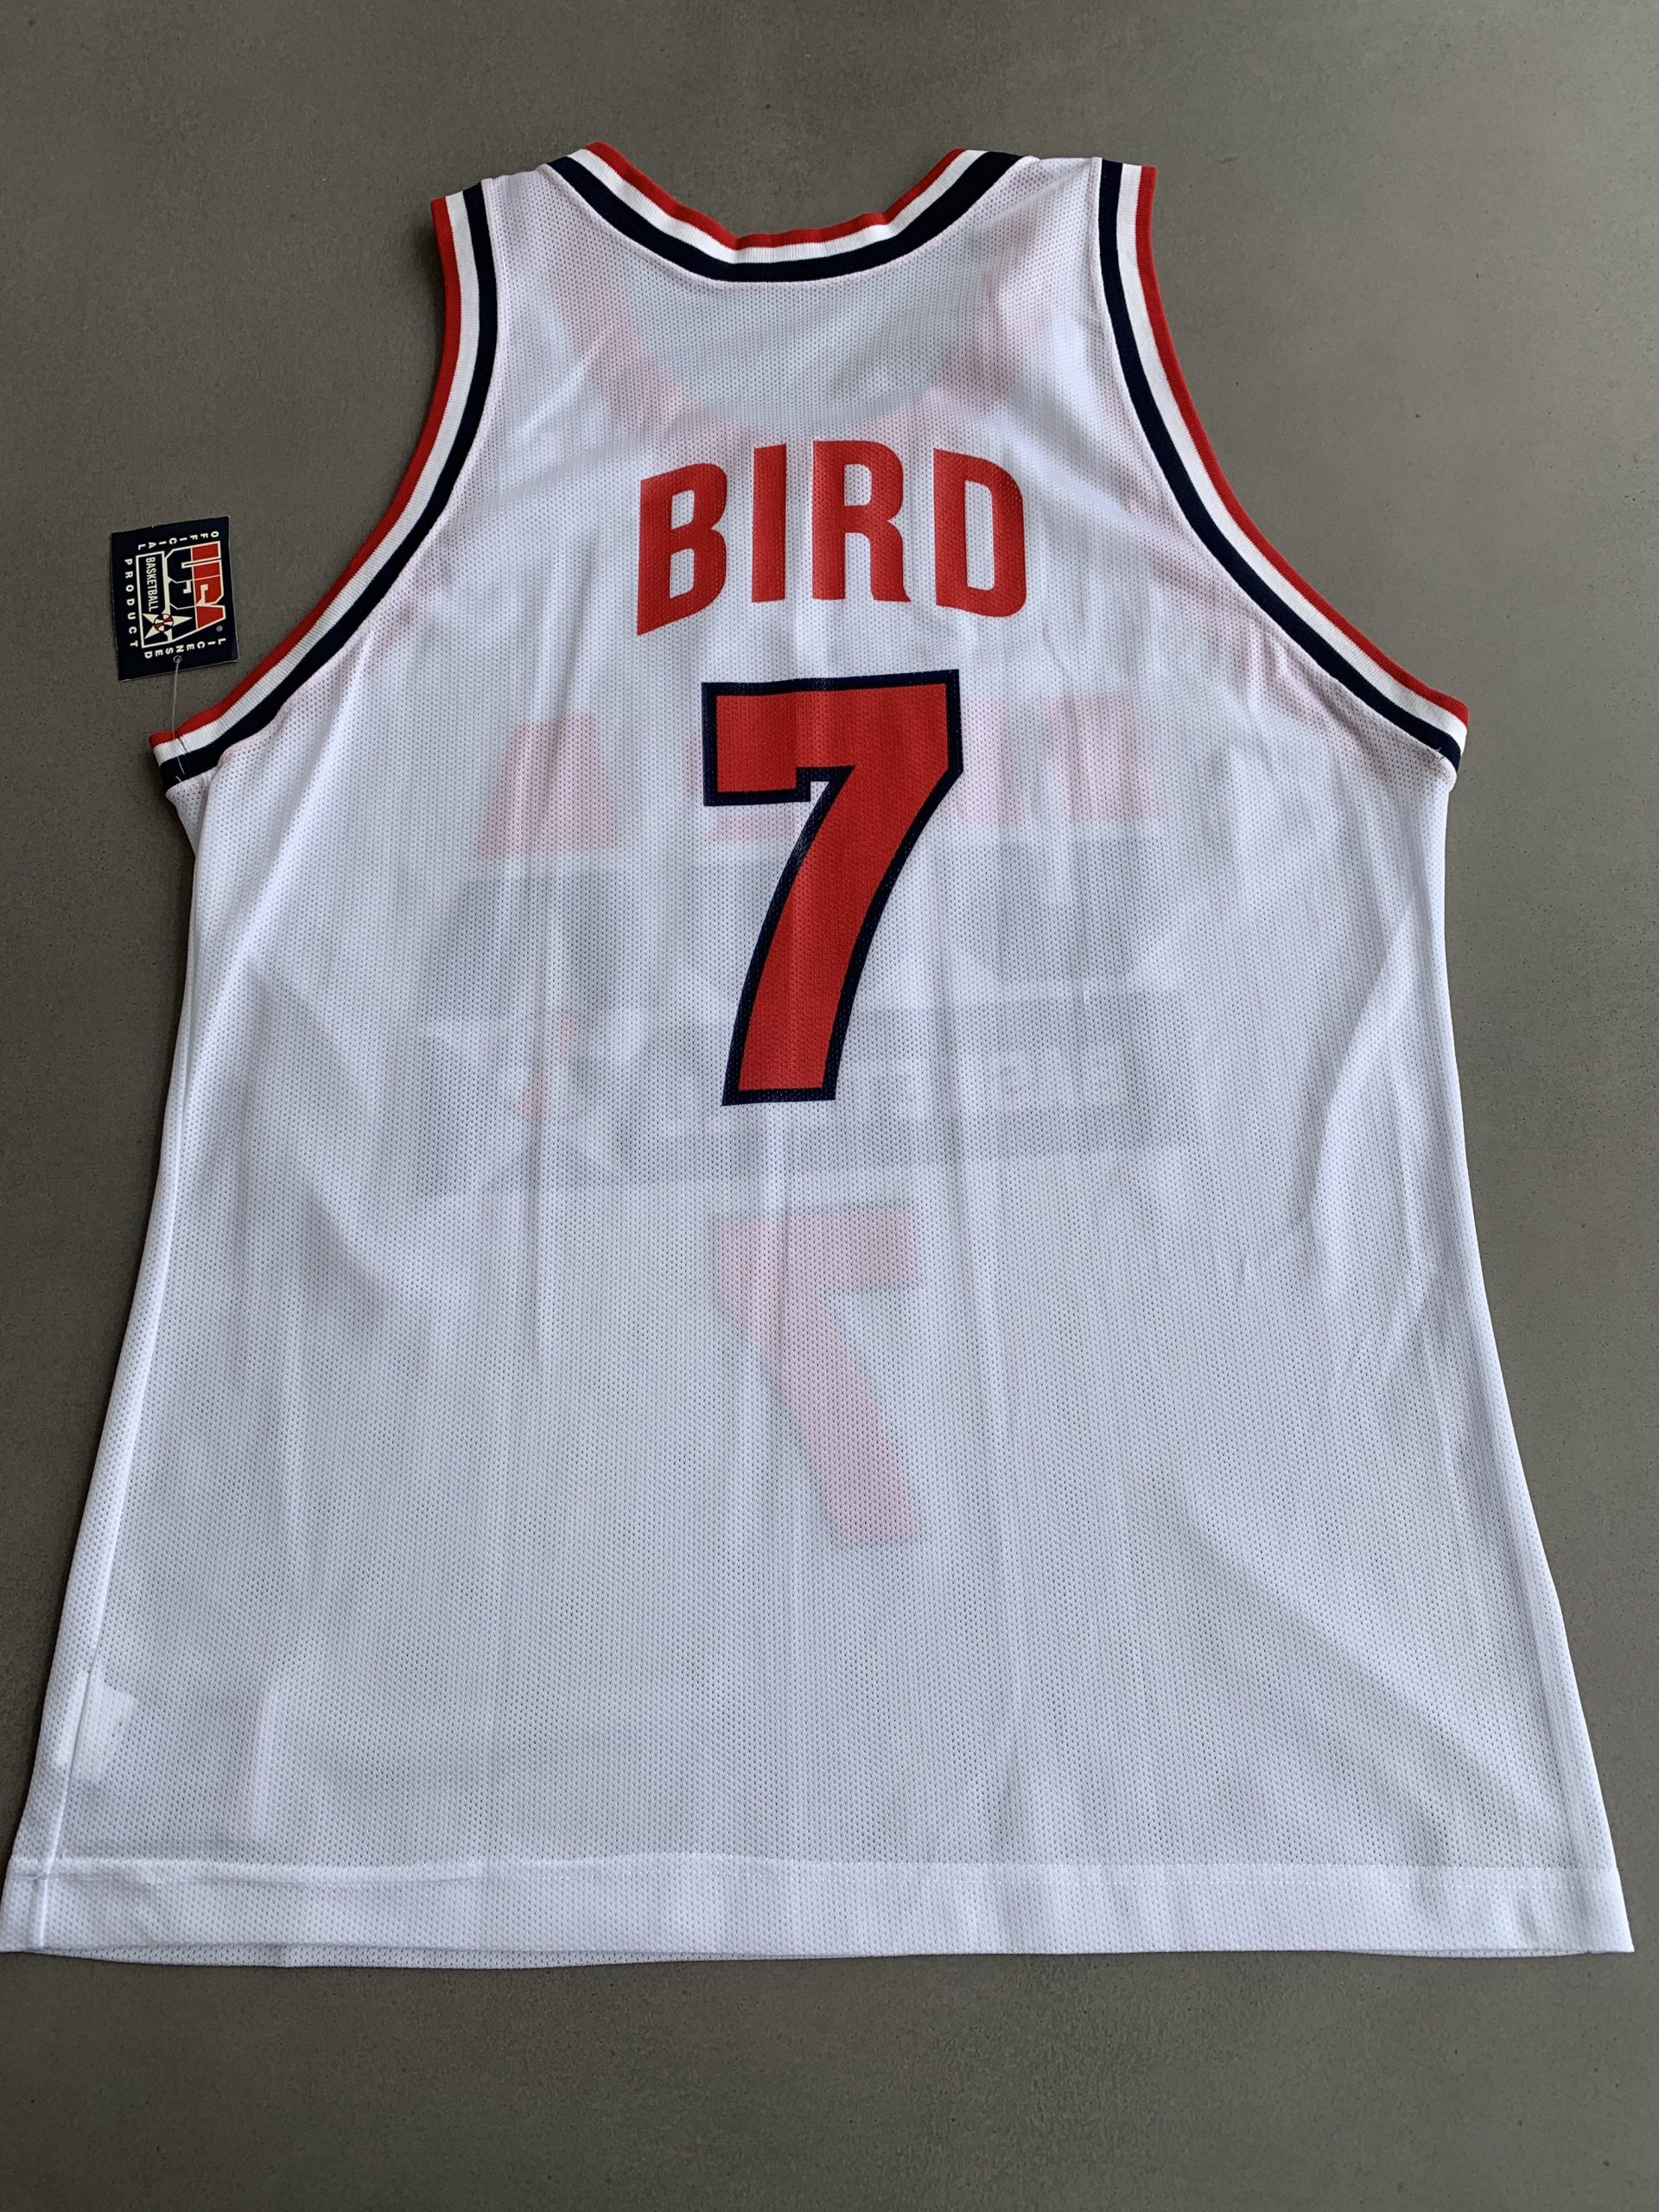 Wholesale Tennis Jerseys Champion Larry Bird Olympics